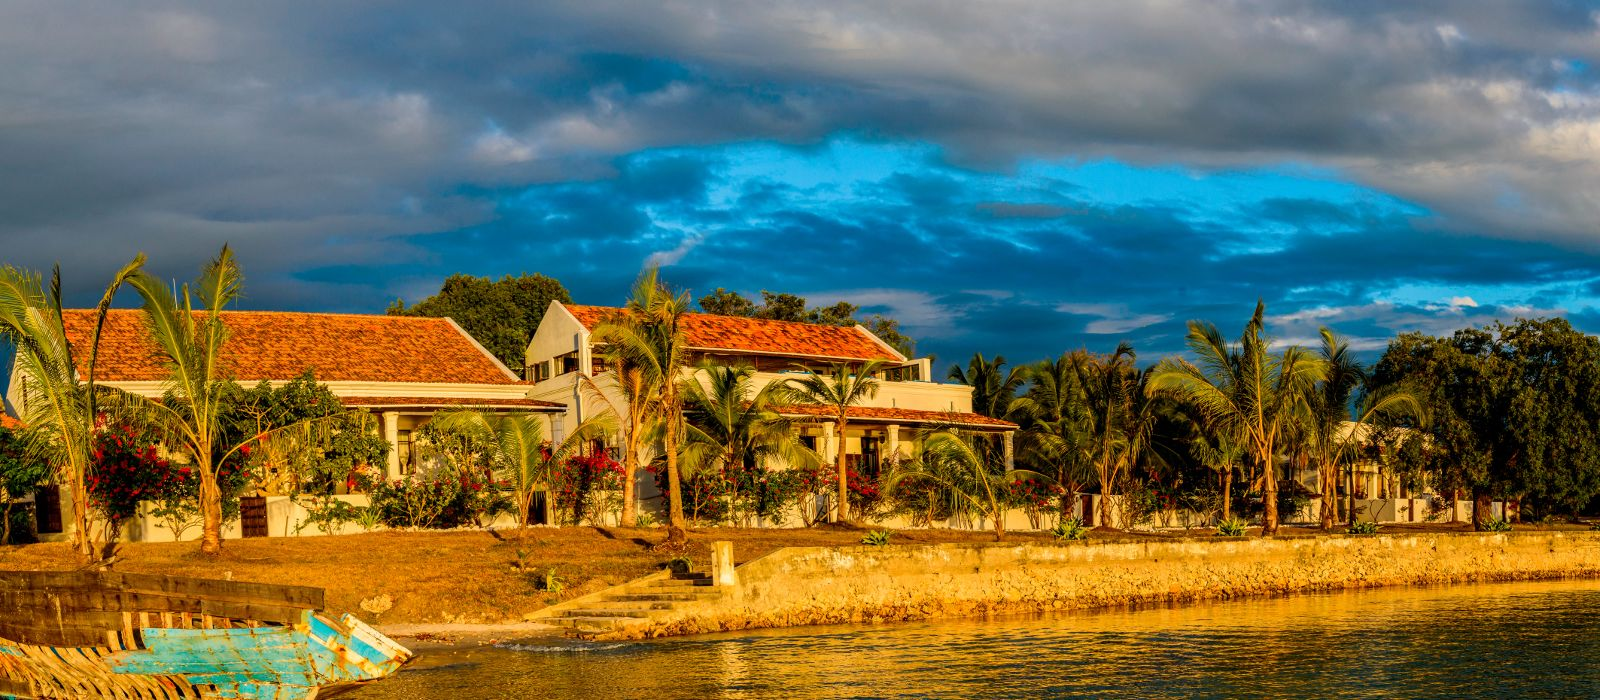 Hotel Ibo Island Lodge Mozambique